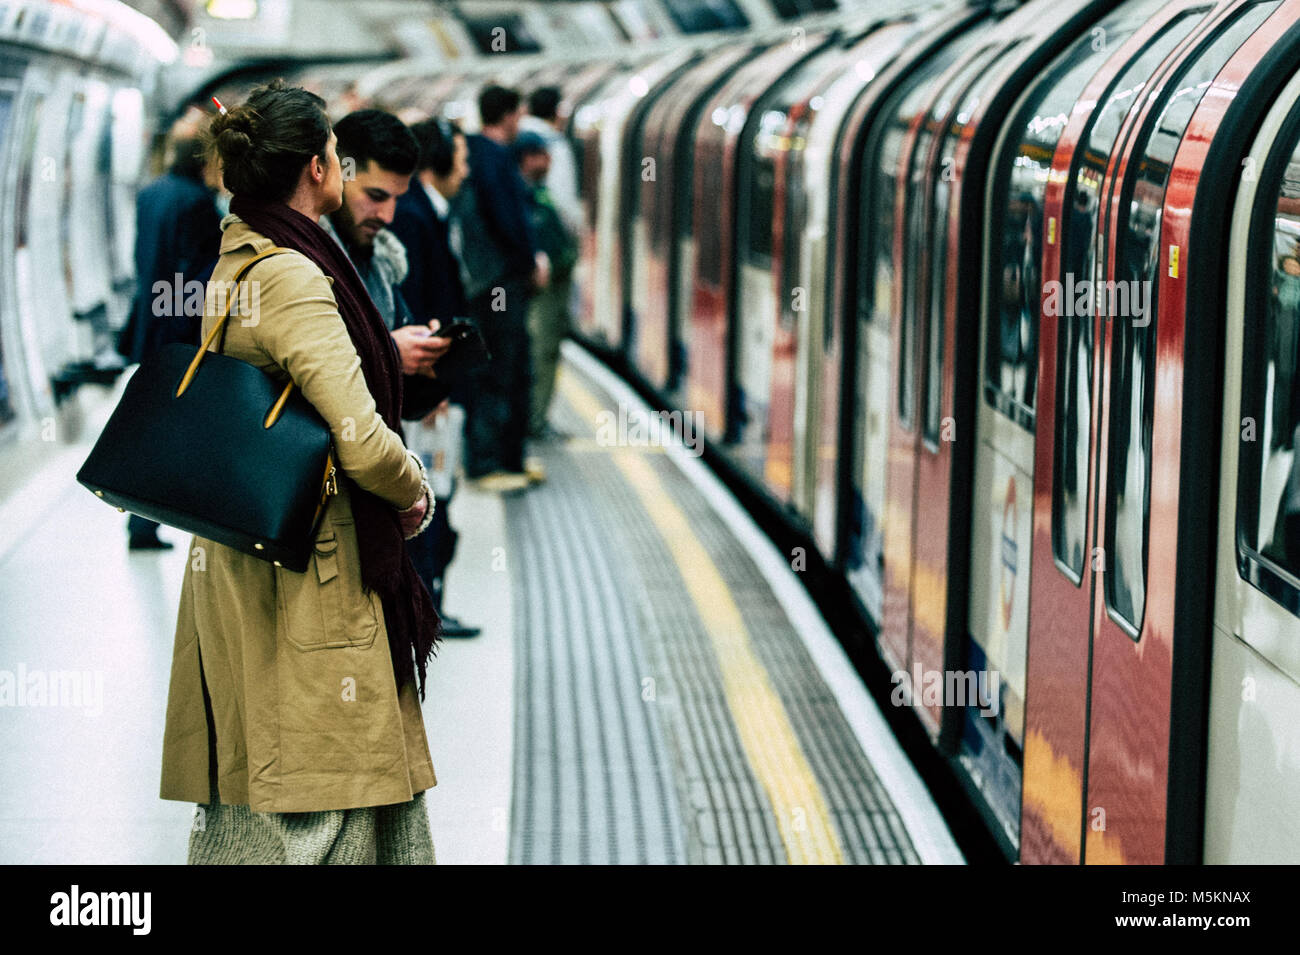 Commuters wait for the Central Line underground train in Bank Station, London - Stock Image